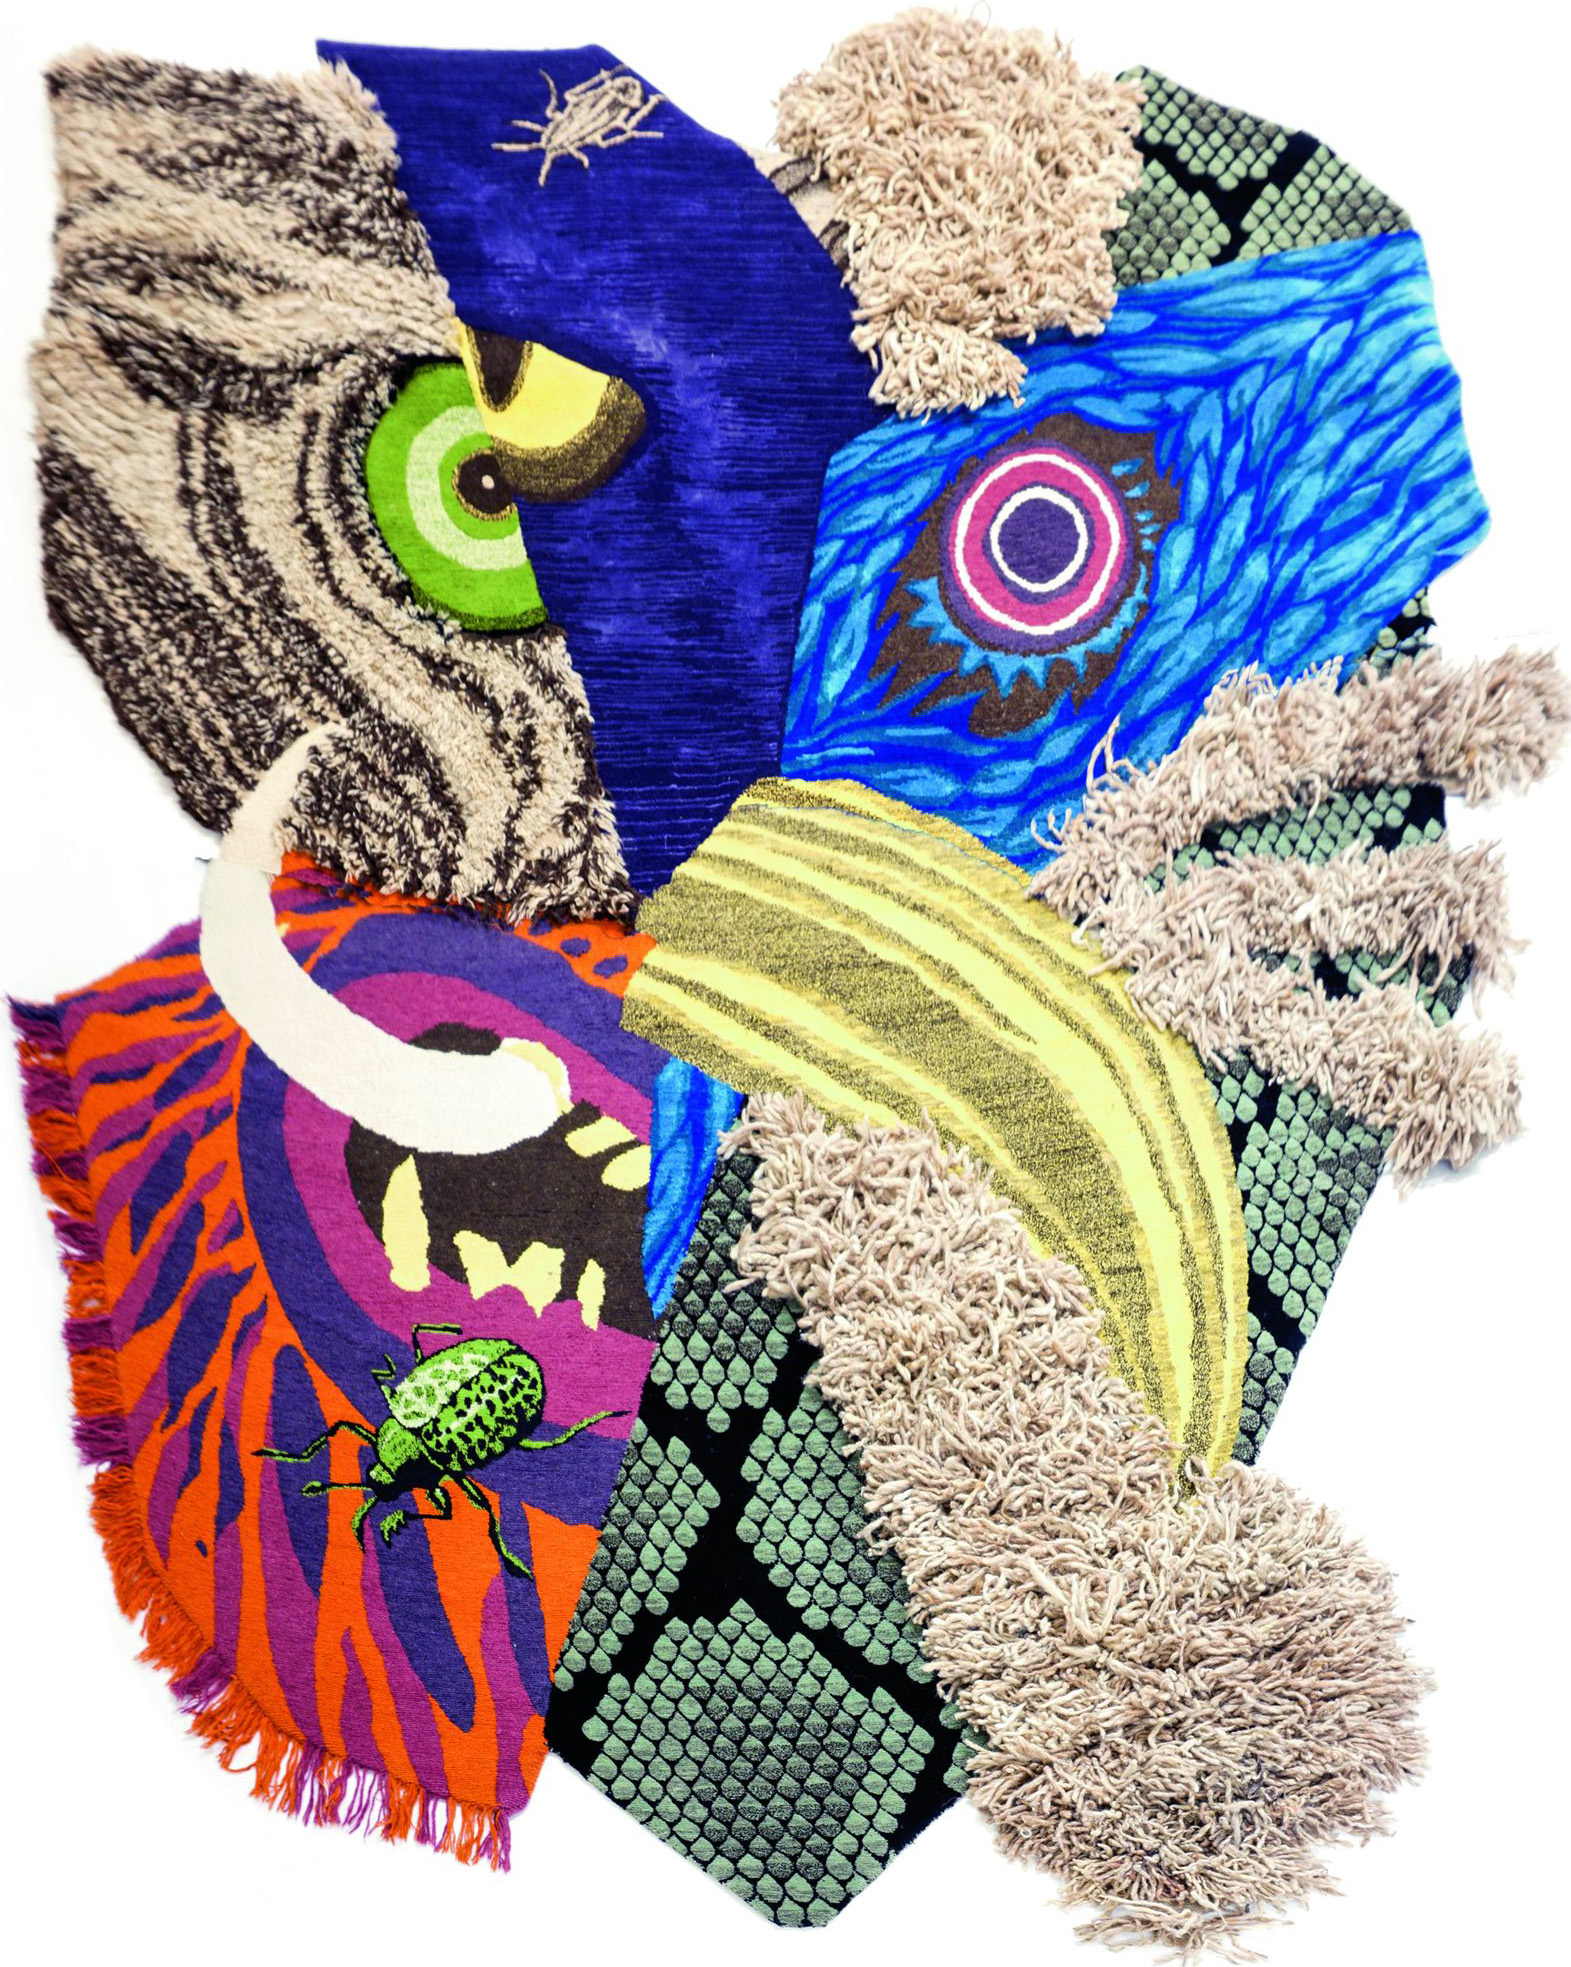 Un-Official Finalist, Best Studio Artist: 'Animal Mask' by Christoph Hefti Rugs | Image courtesy of Christoph Hefti Rugs via Domotex.